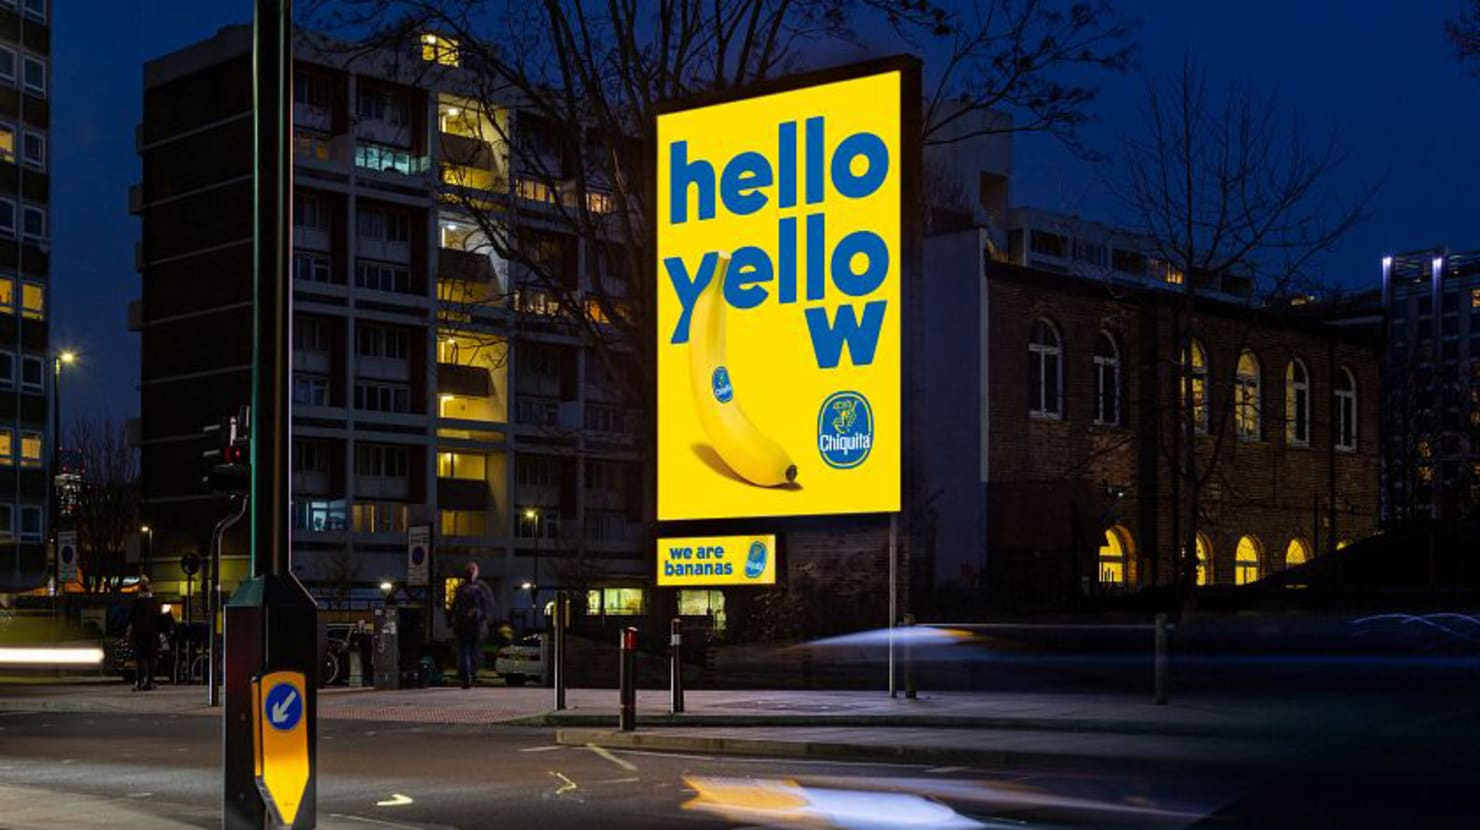 FMCG Advertising for Chiquita on Outdoor